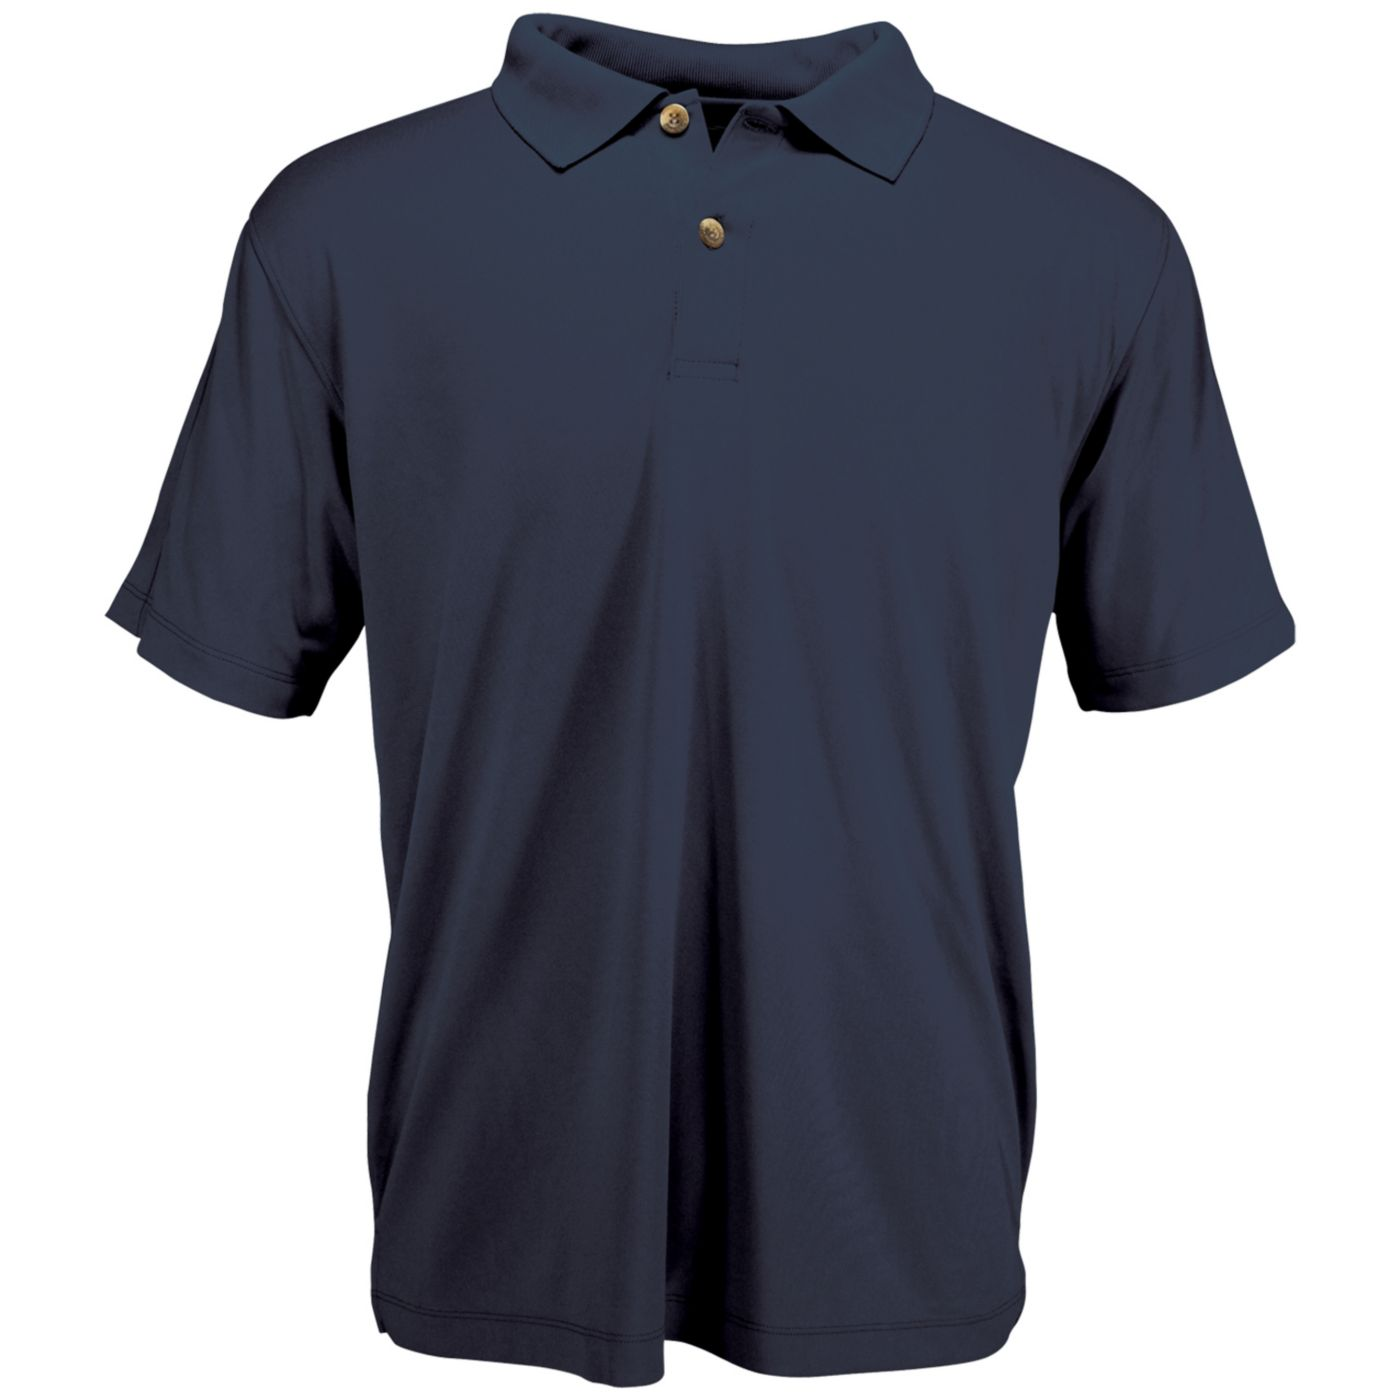 Arborwear Men's Transpiration Polo Shirt